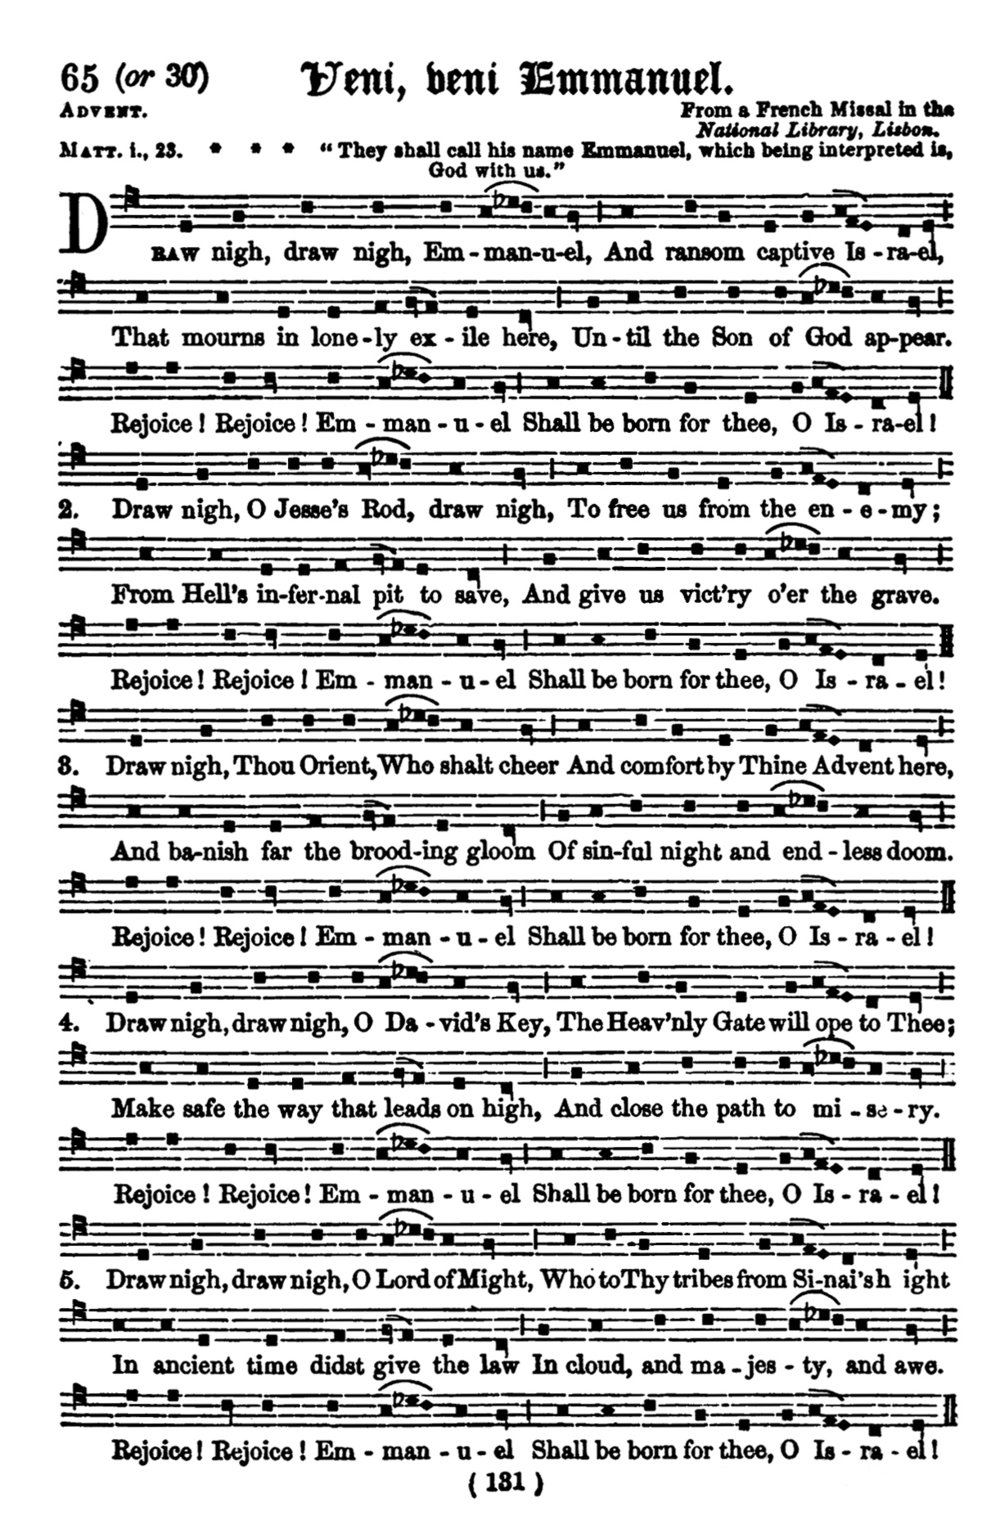 HymnalNoted-1851-56-p131.jpg